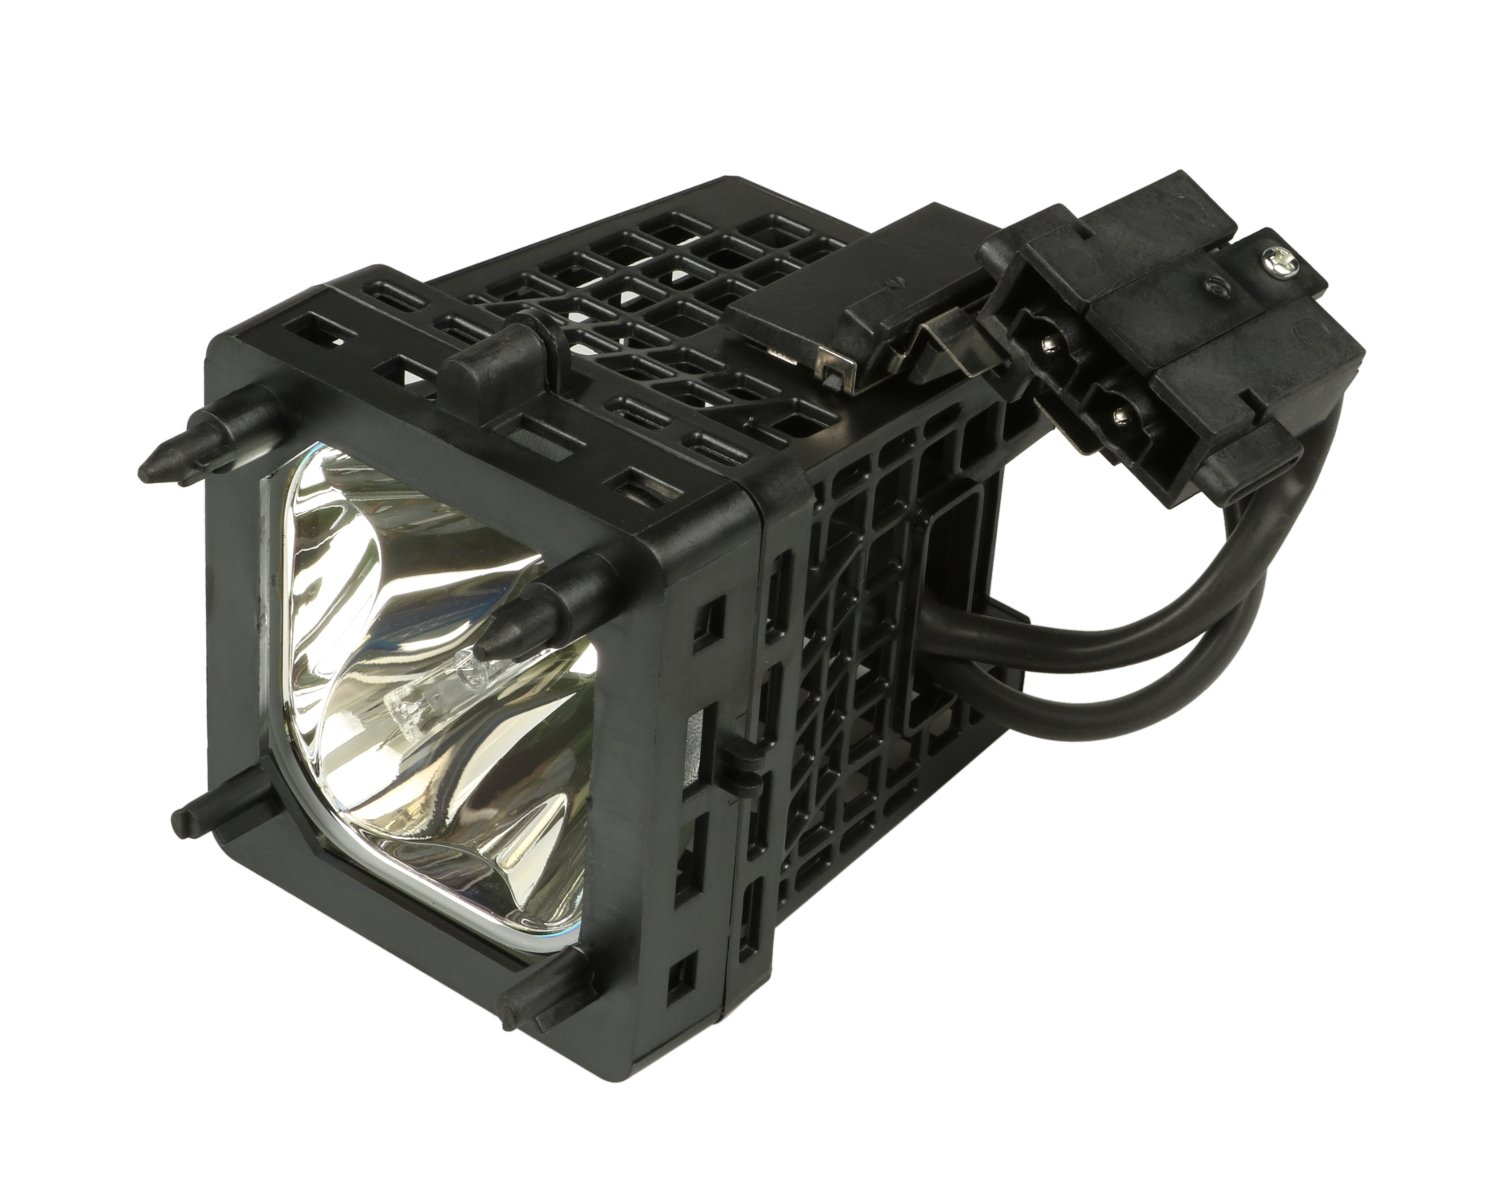 XL-5200 Lamp Assembly for KDS-60A2020